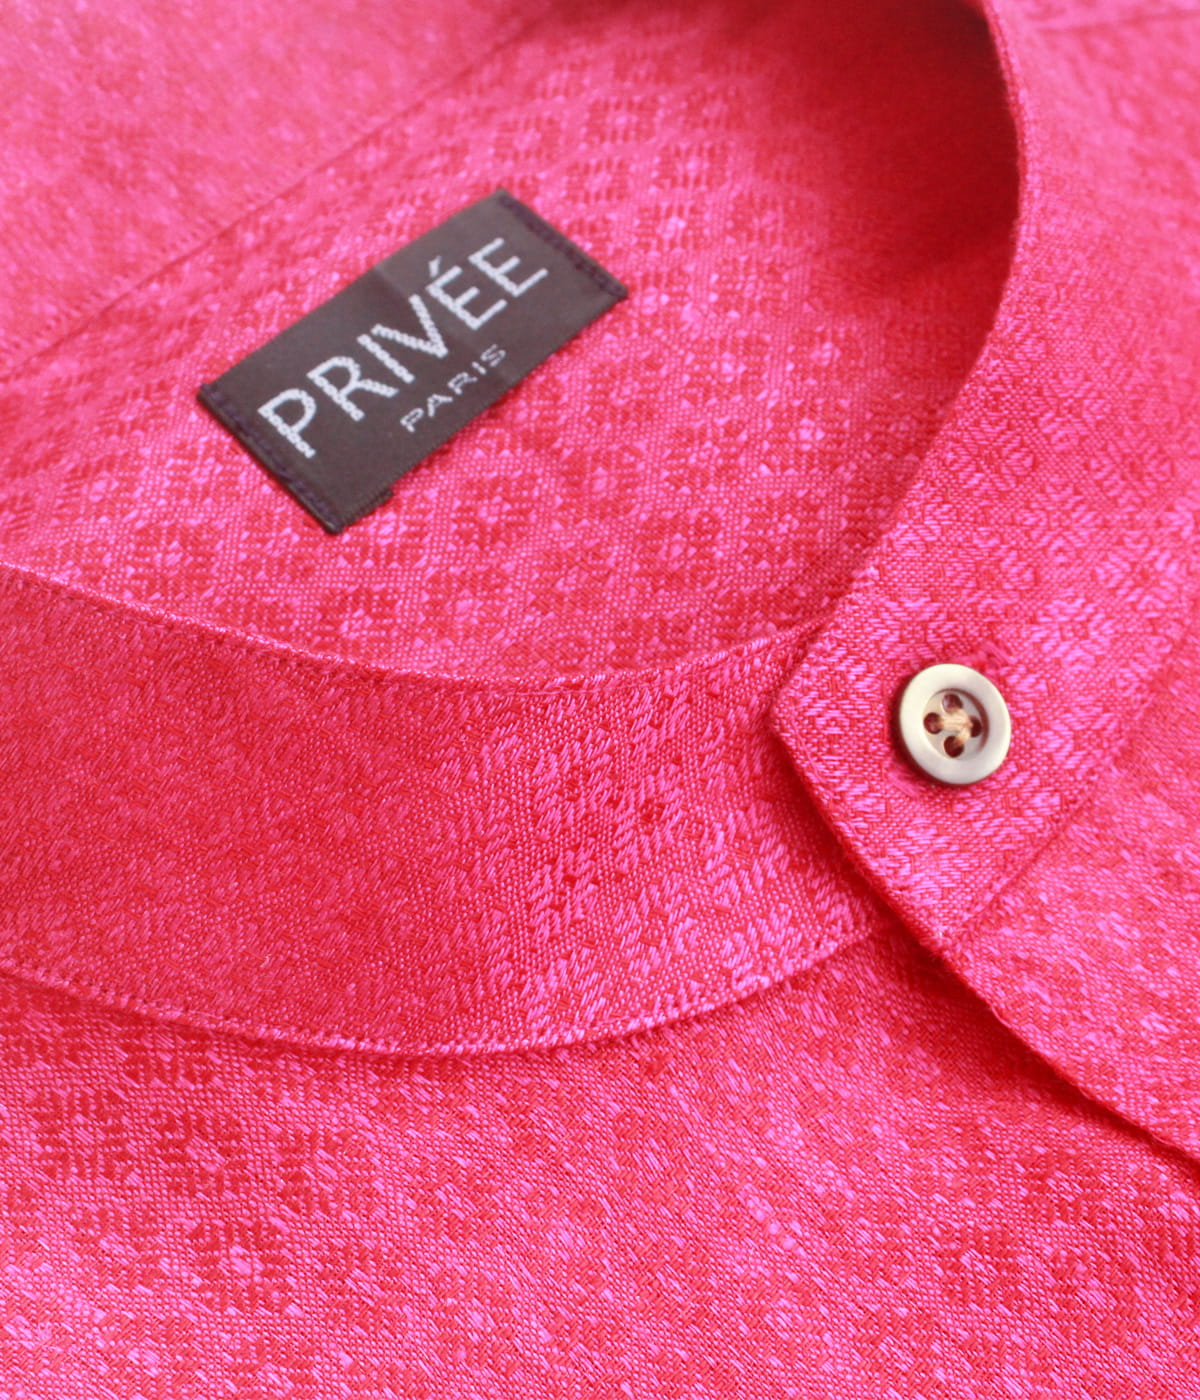 Privee Paris Wedding Shirts in India